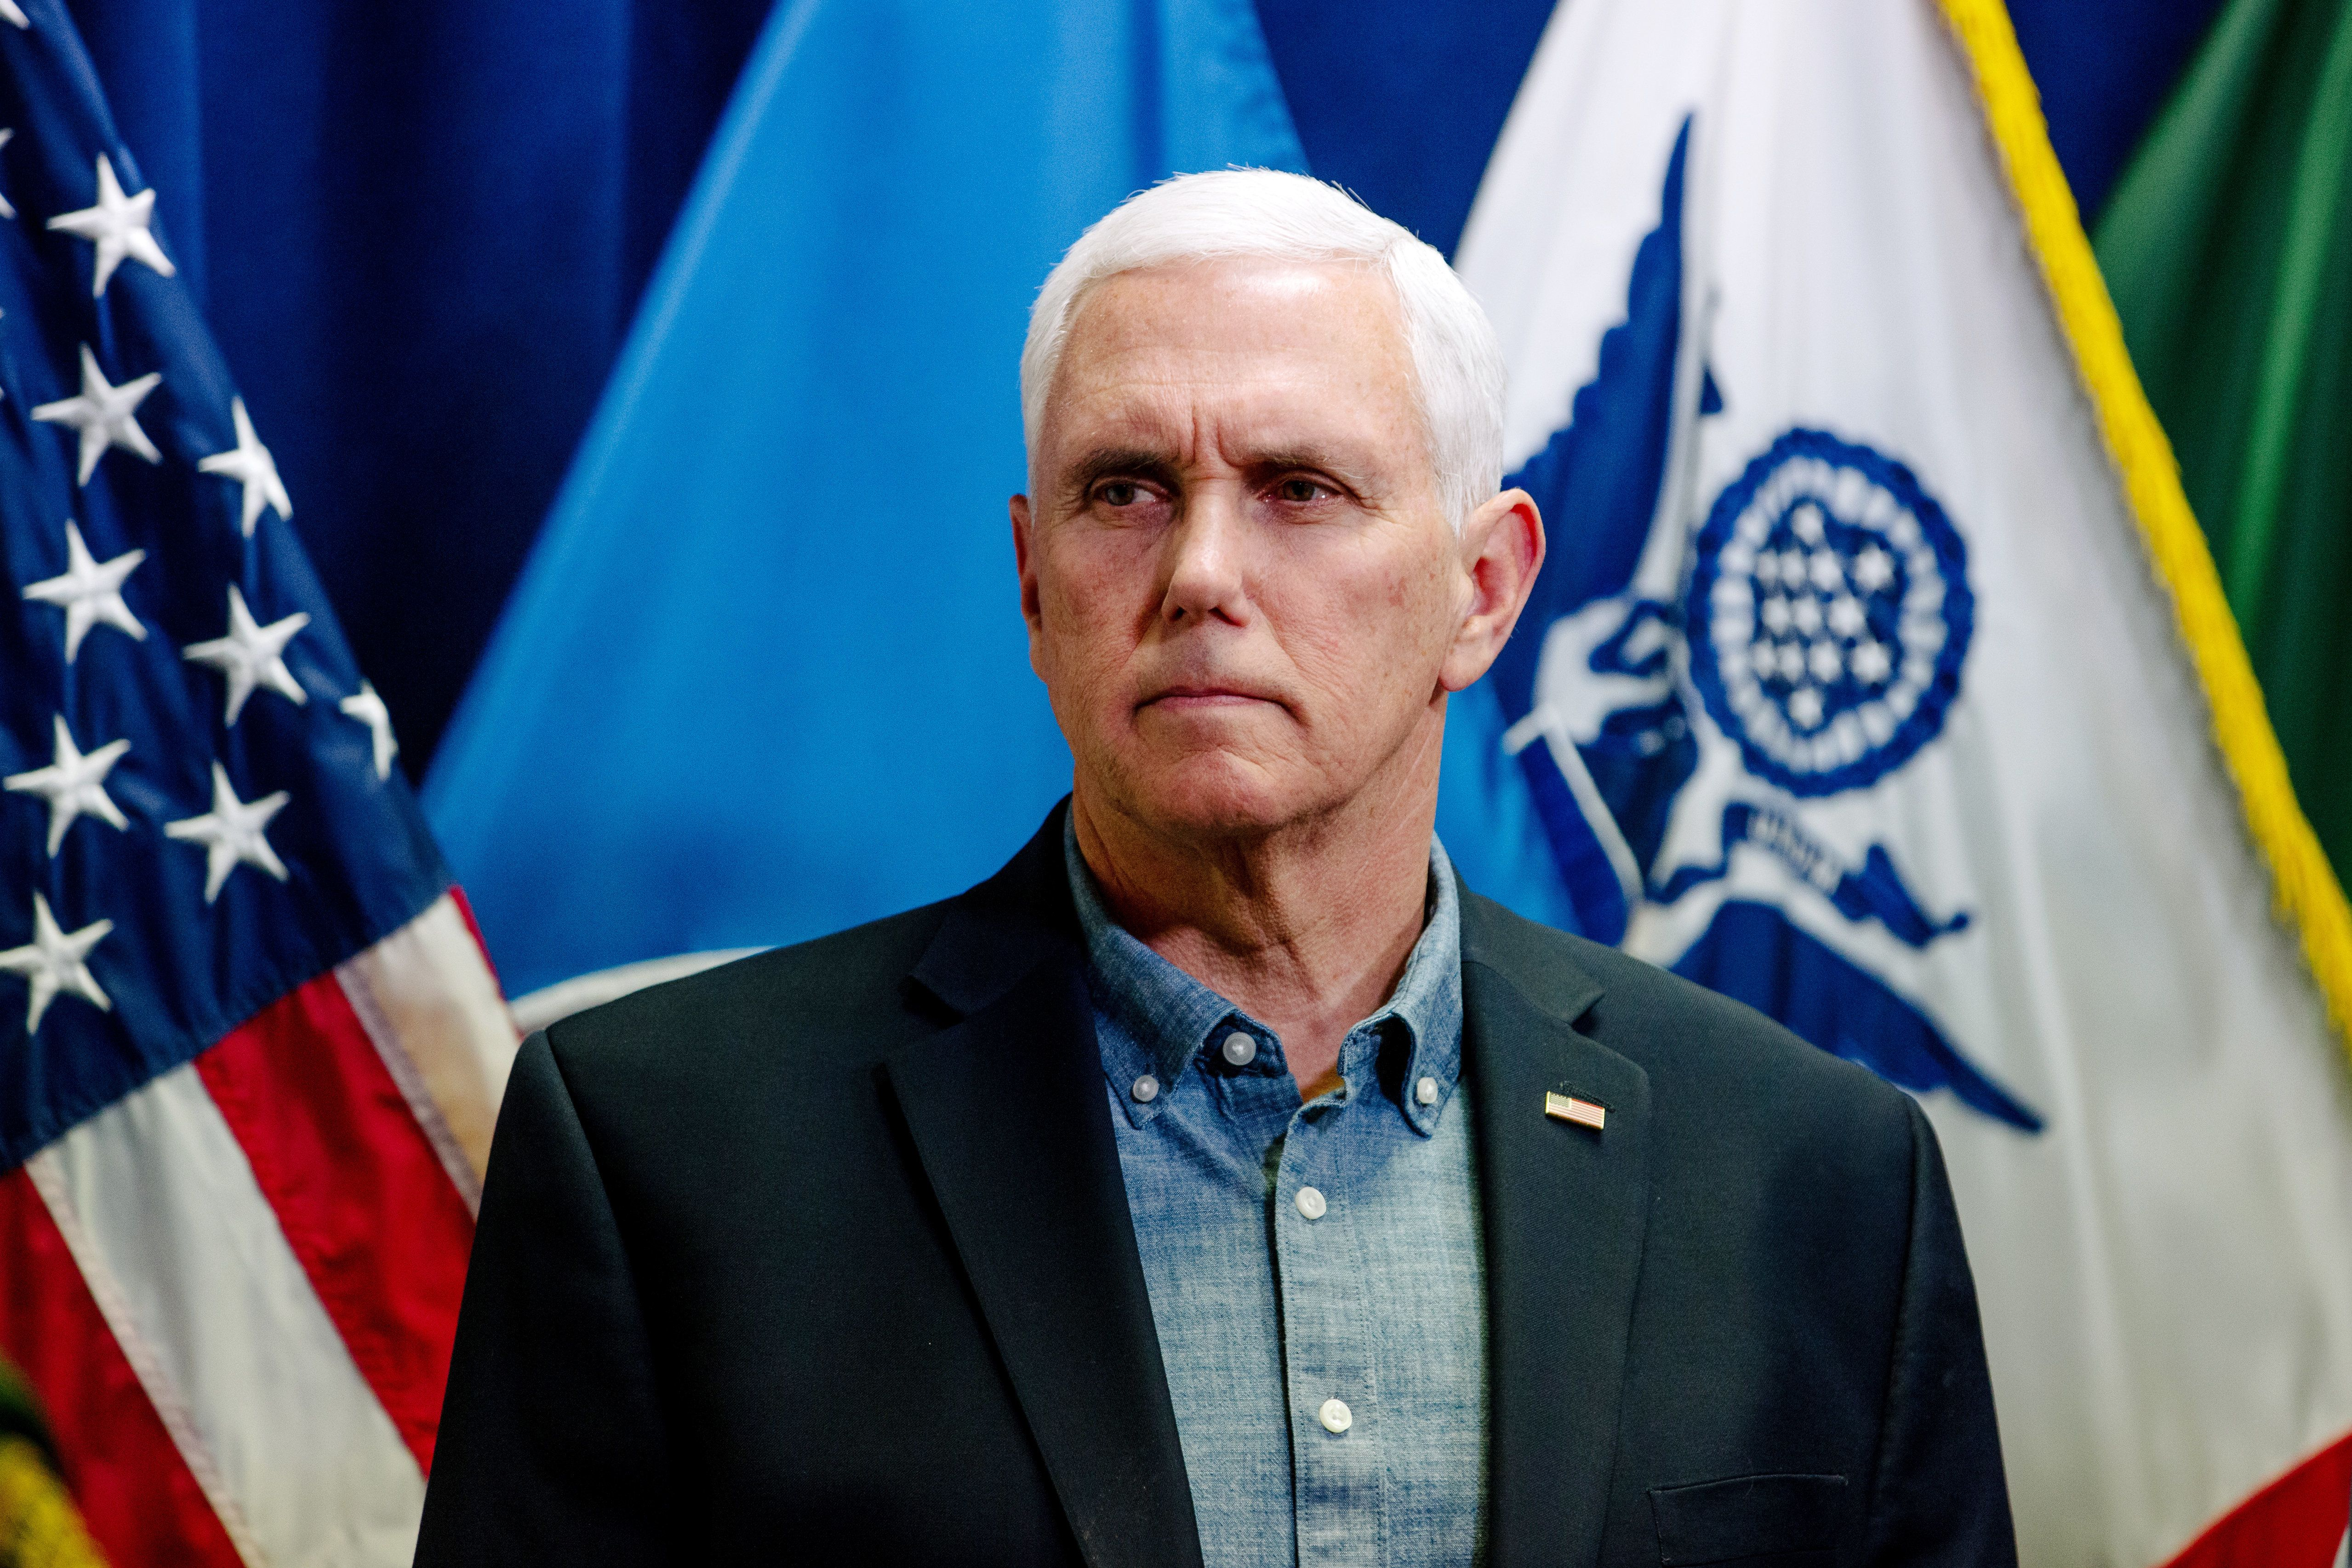 U.S. Vice President Mike Pence listens during a visit to the U.S. Border Patrol Station in Nogales, Arizona, U.S., on Thursday, April 11, 2019. President Donald Trump's intensifying border crackdown promises to make immigration a central issue of the 2020 campaign, but the Democrats running to replace him haven't yet offered voters a detailed vision beyond fierce opposition to his policies. Photographer: Caitlin O'Hara/Bloomberg via Getty Images